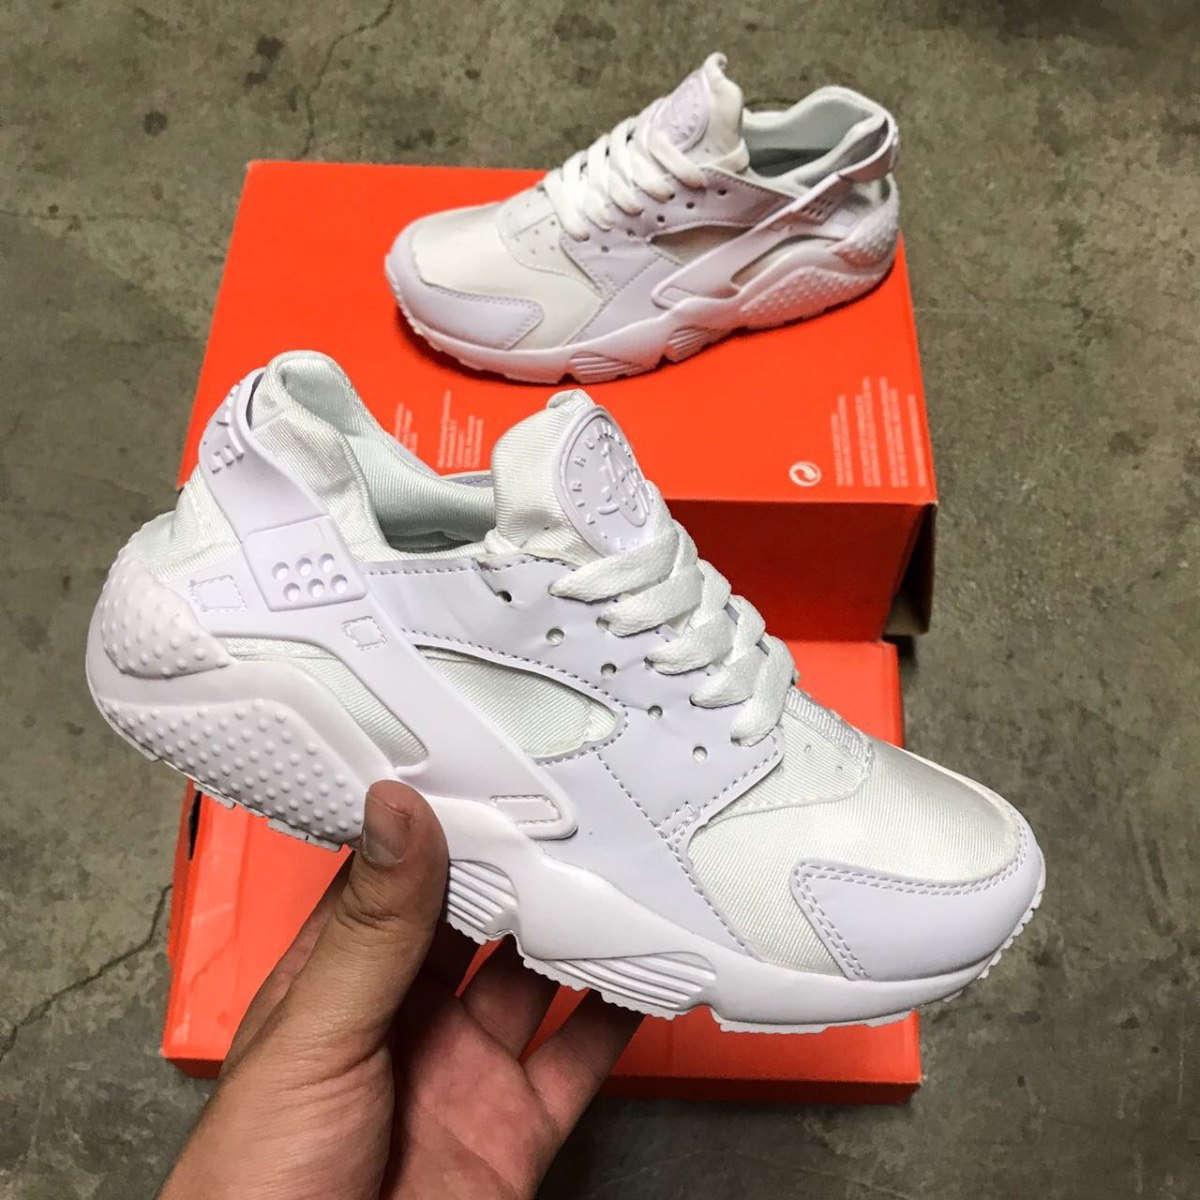 low price nike huarache todas blanco uk 87ed4 93d29 rh kewauneecares com